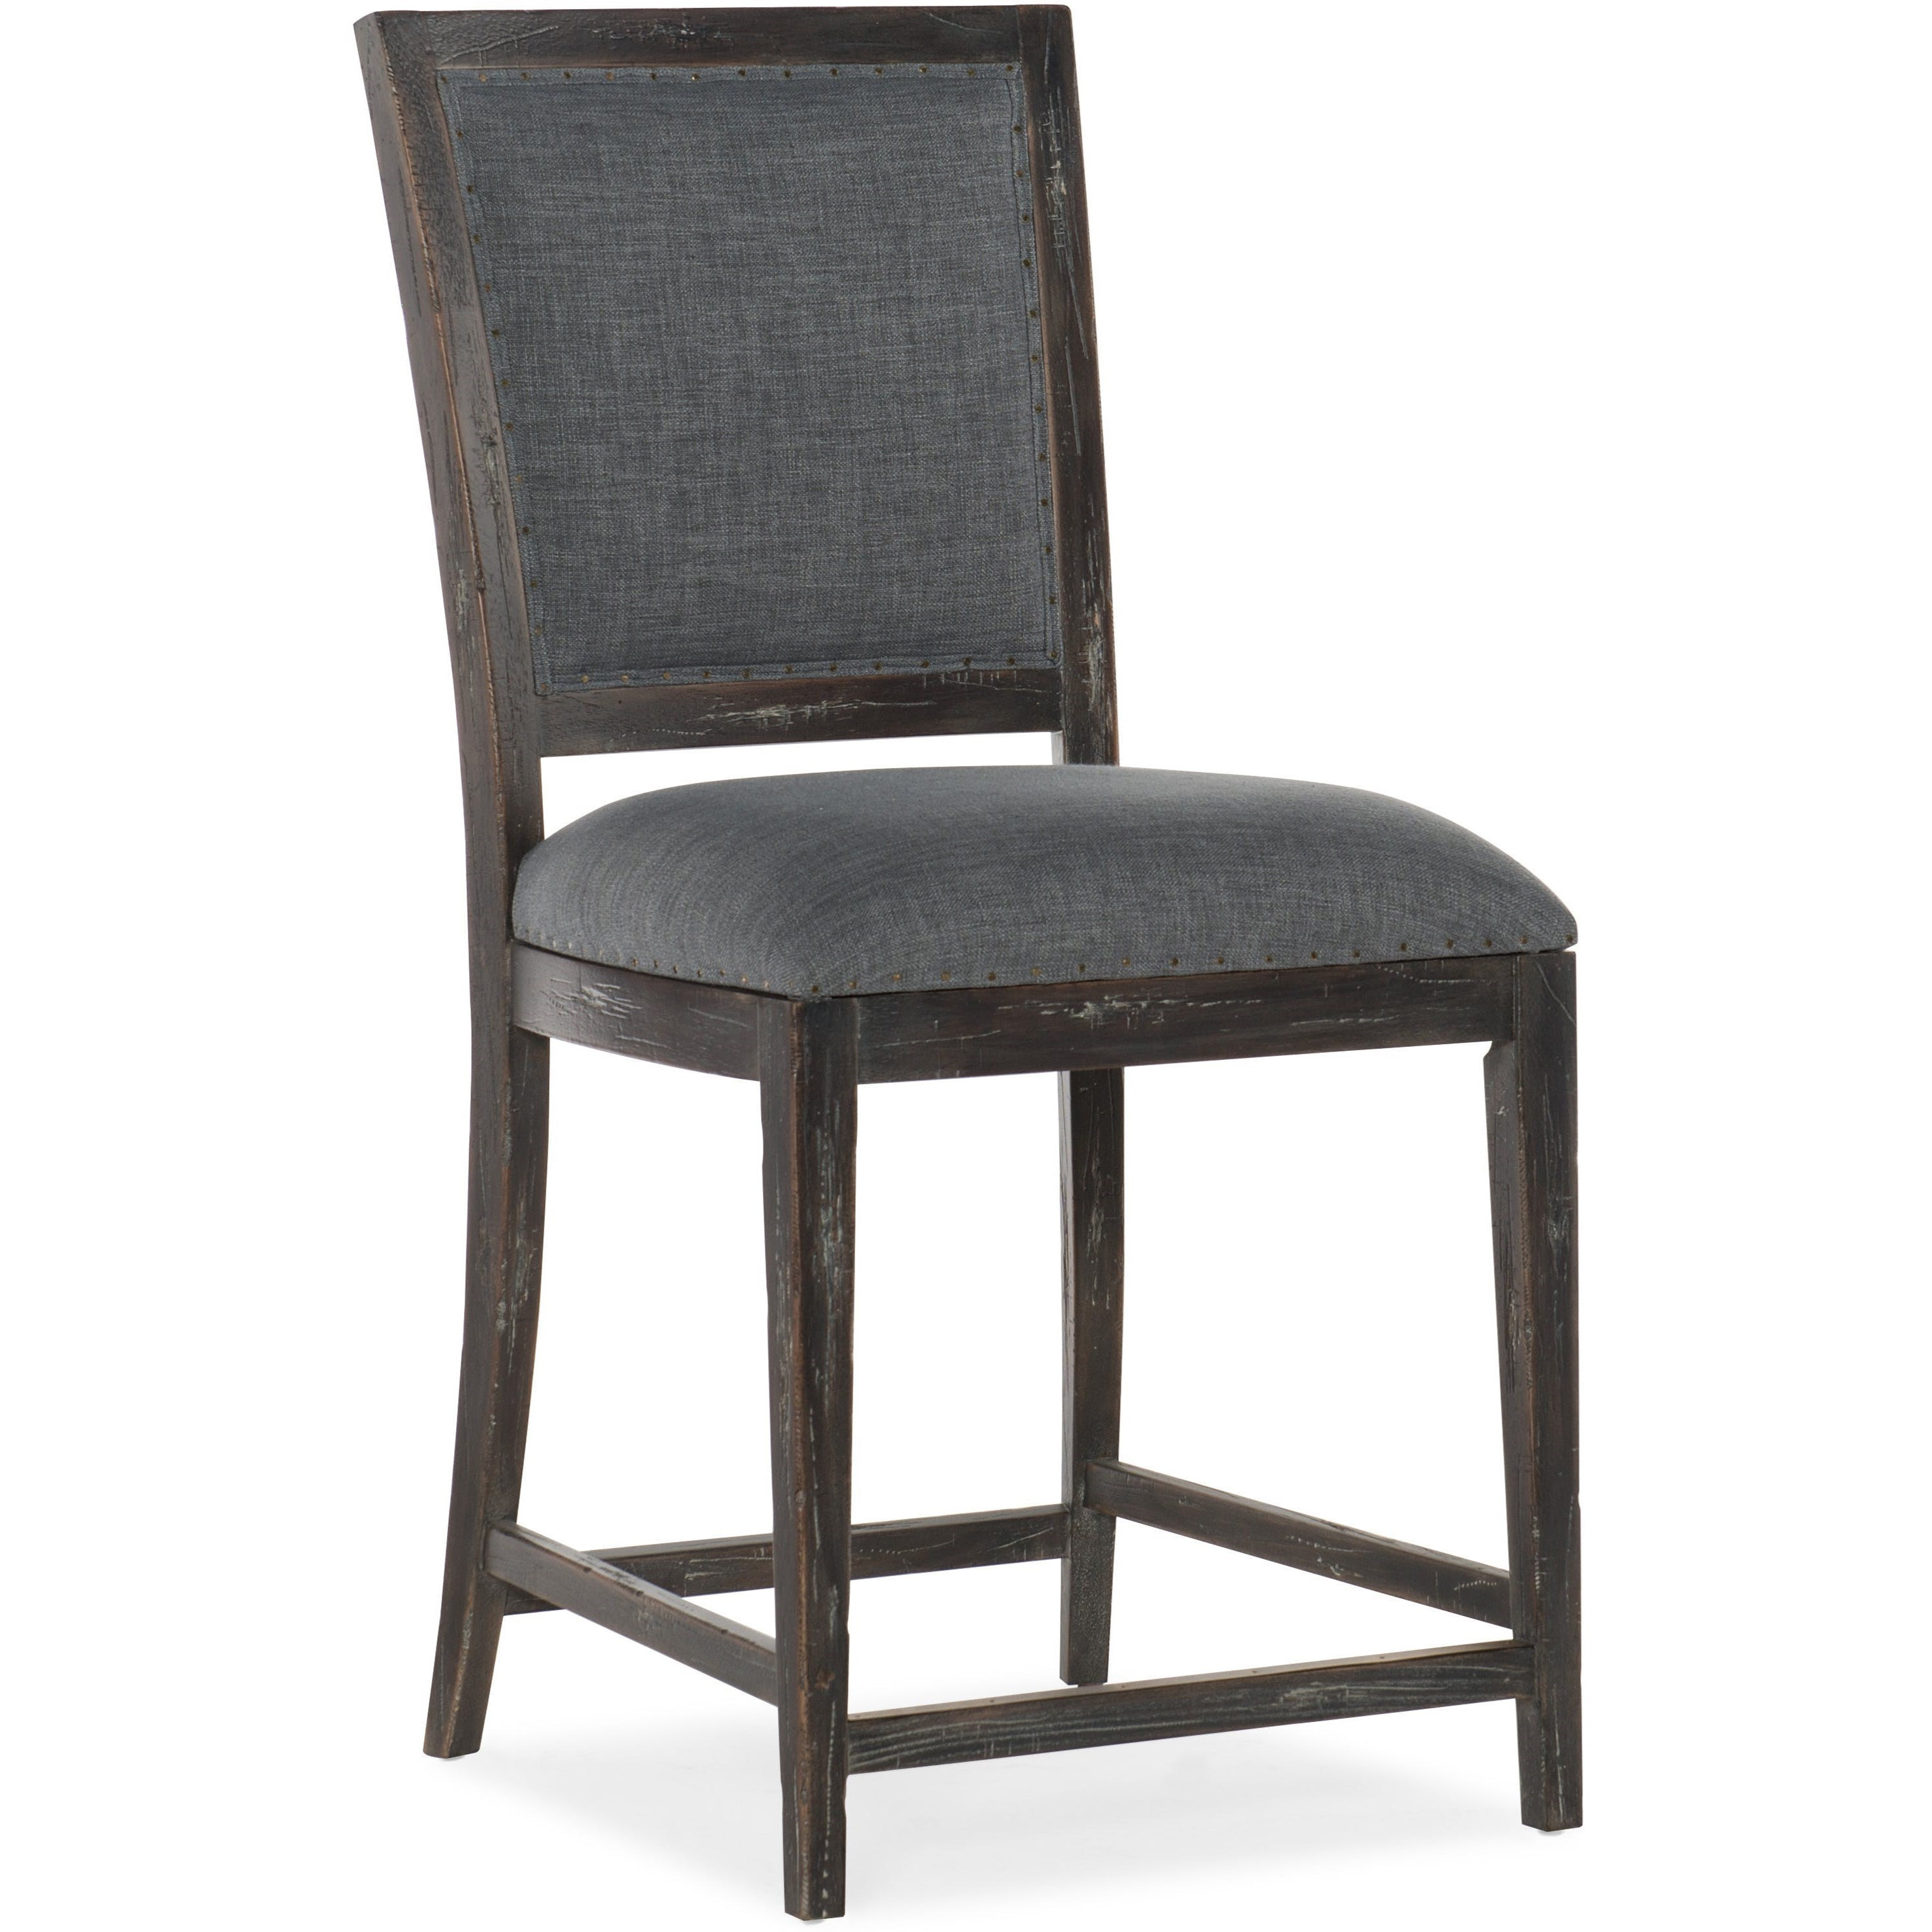 Beaumont Counter Stool by Hooker Furniture at Stoney Creek Furniture